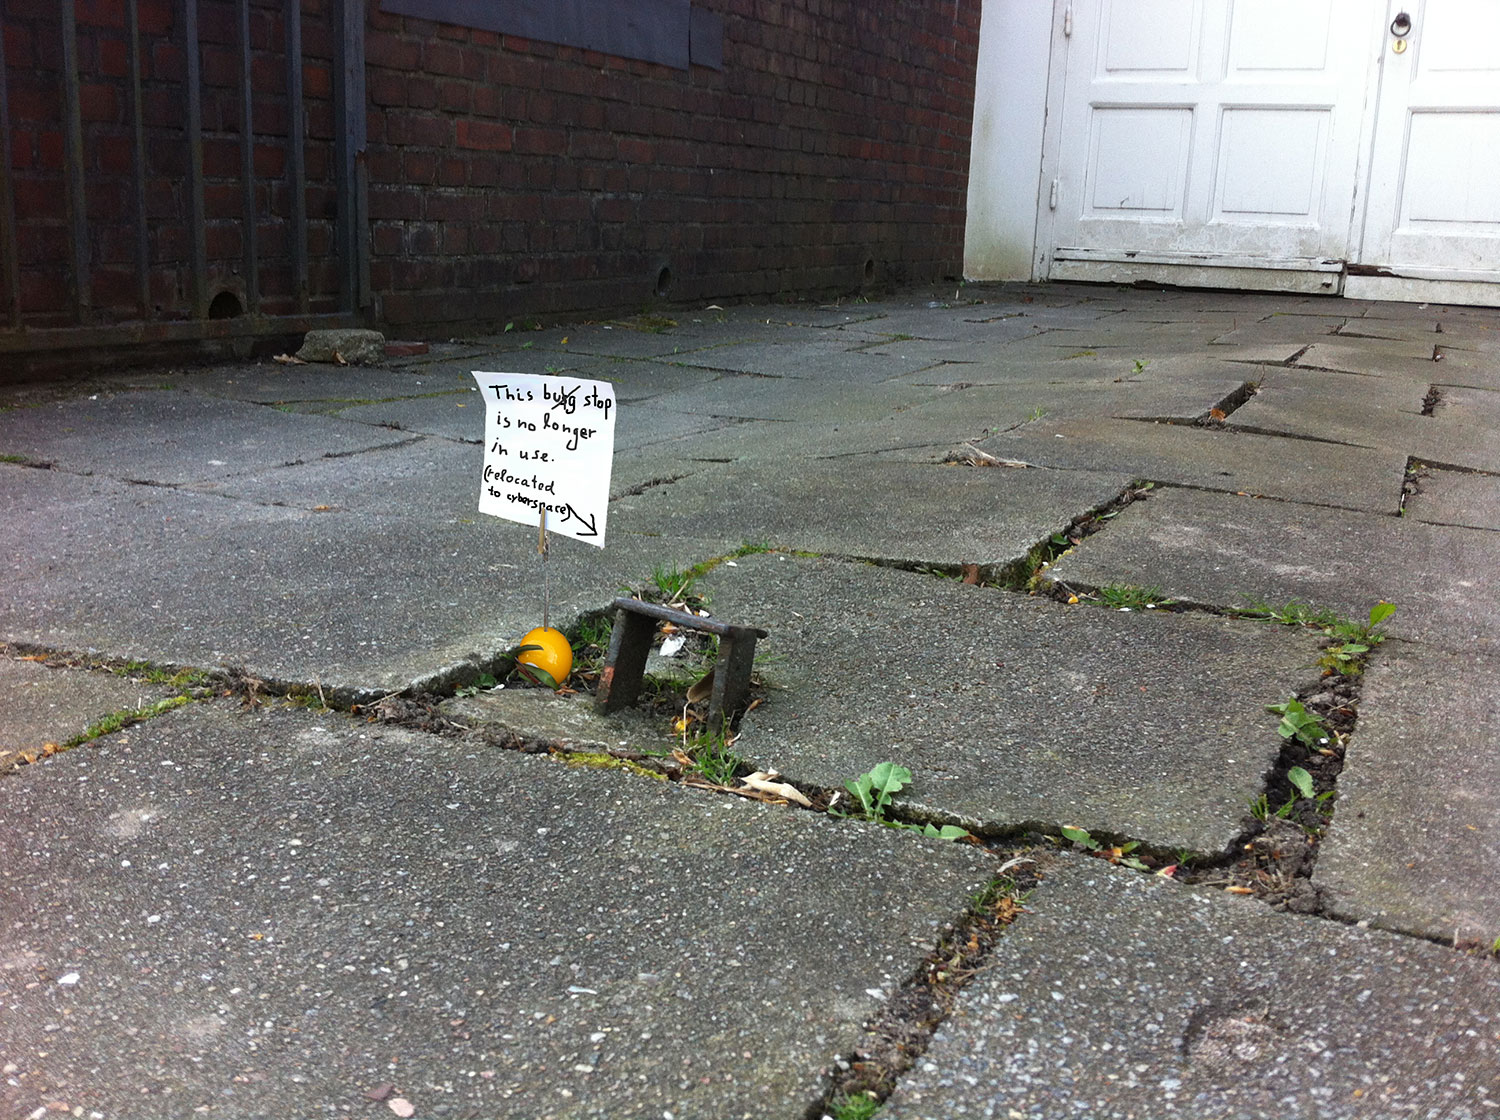 miniature worlds: bug/bus stop, note and arrow